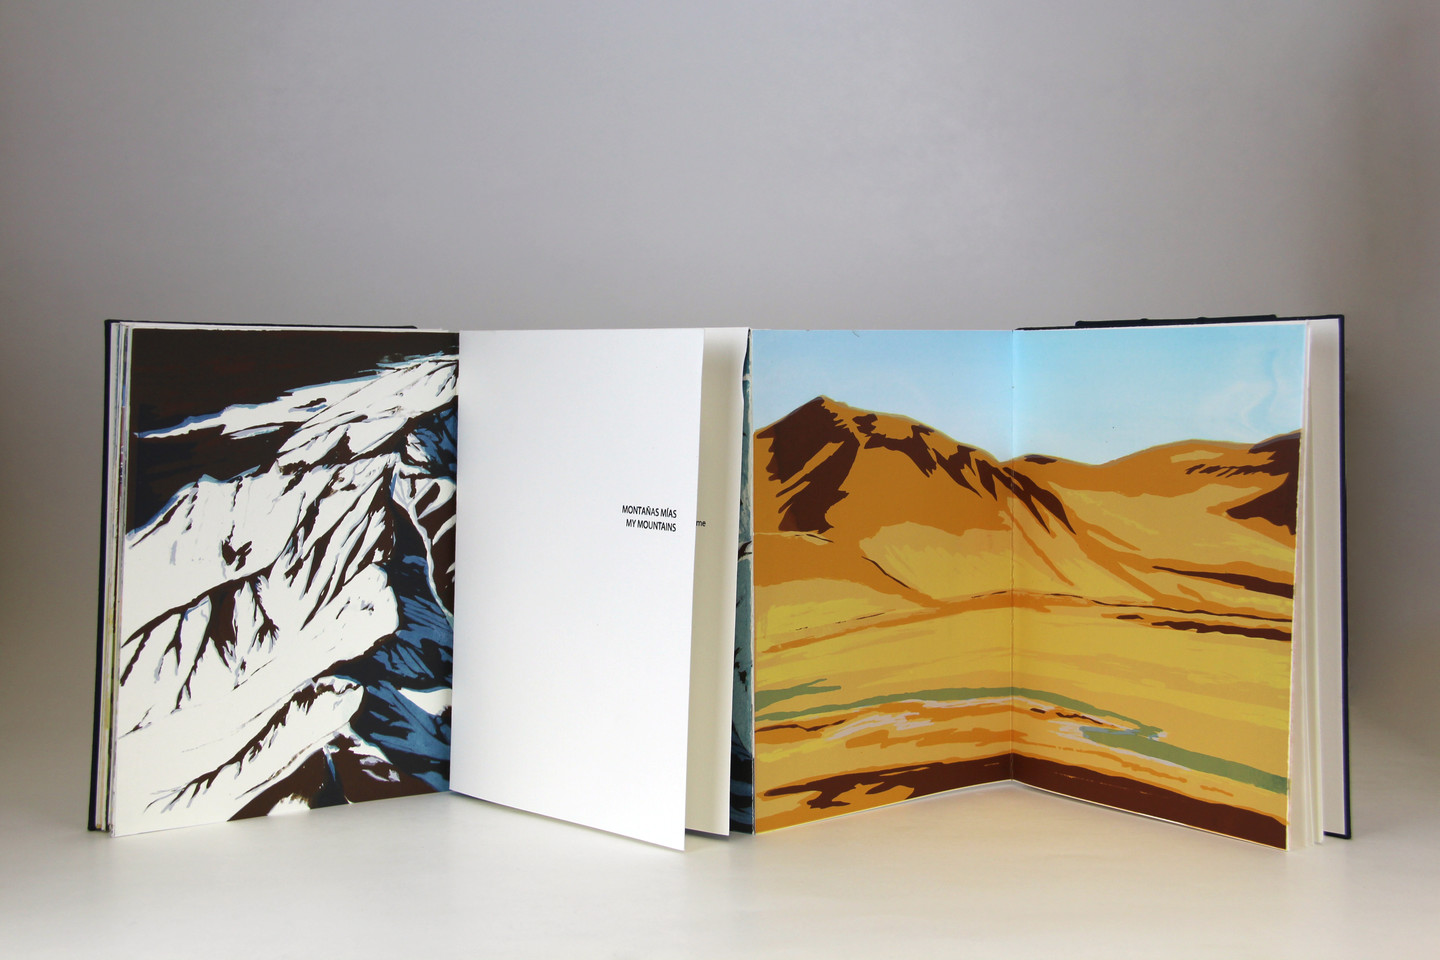 Four leaves of an open book depict mountain ranges. One image shows snow-capped mountains in blue, black and white; the other image depicts a low mountain in desert colors of beige, brown and yellow with a stream in the foreground.